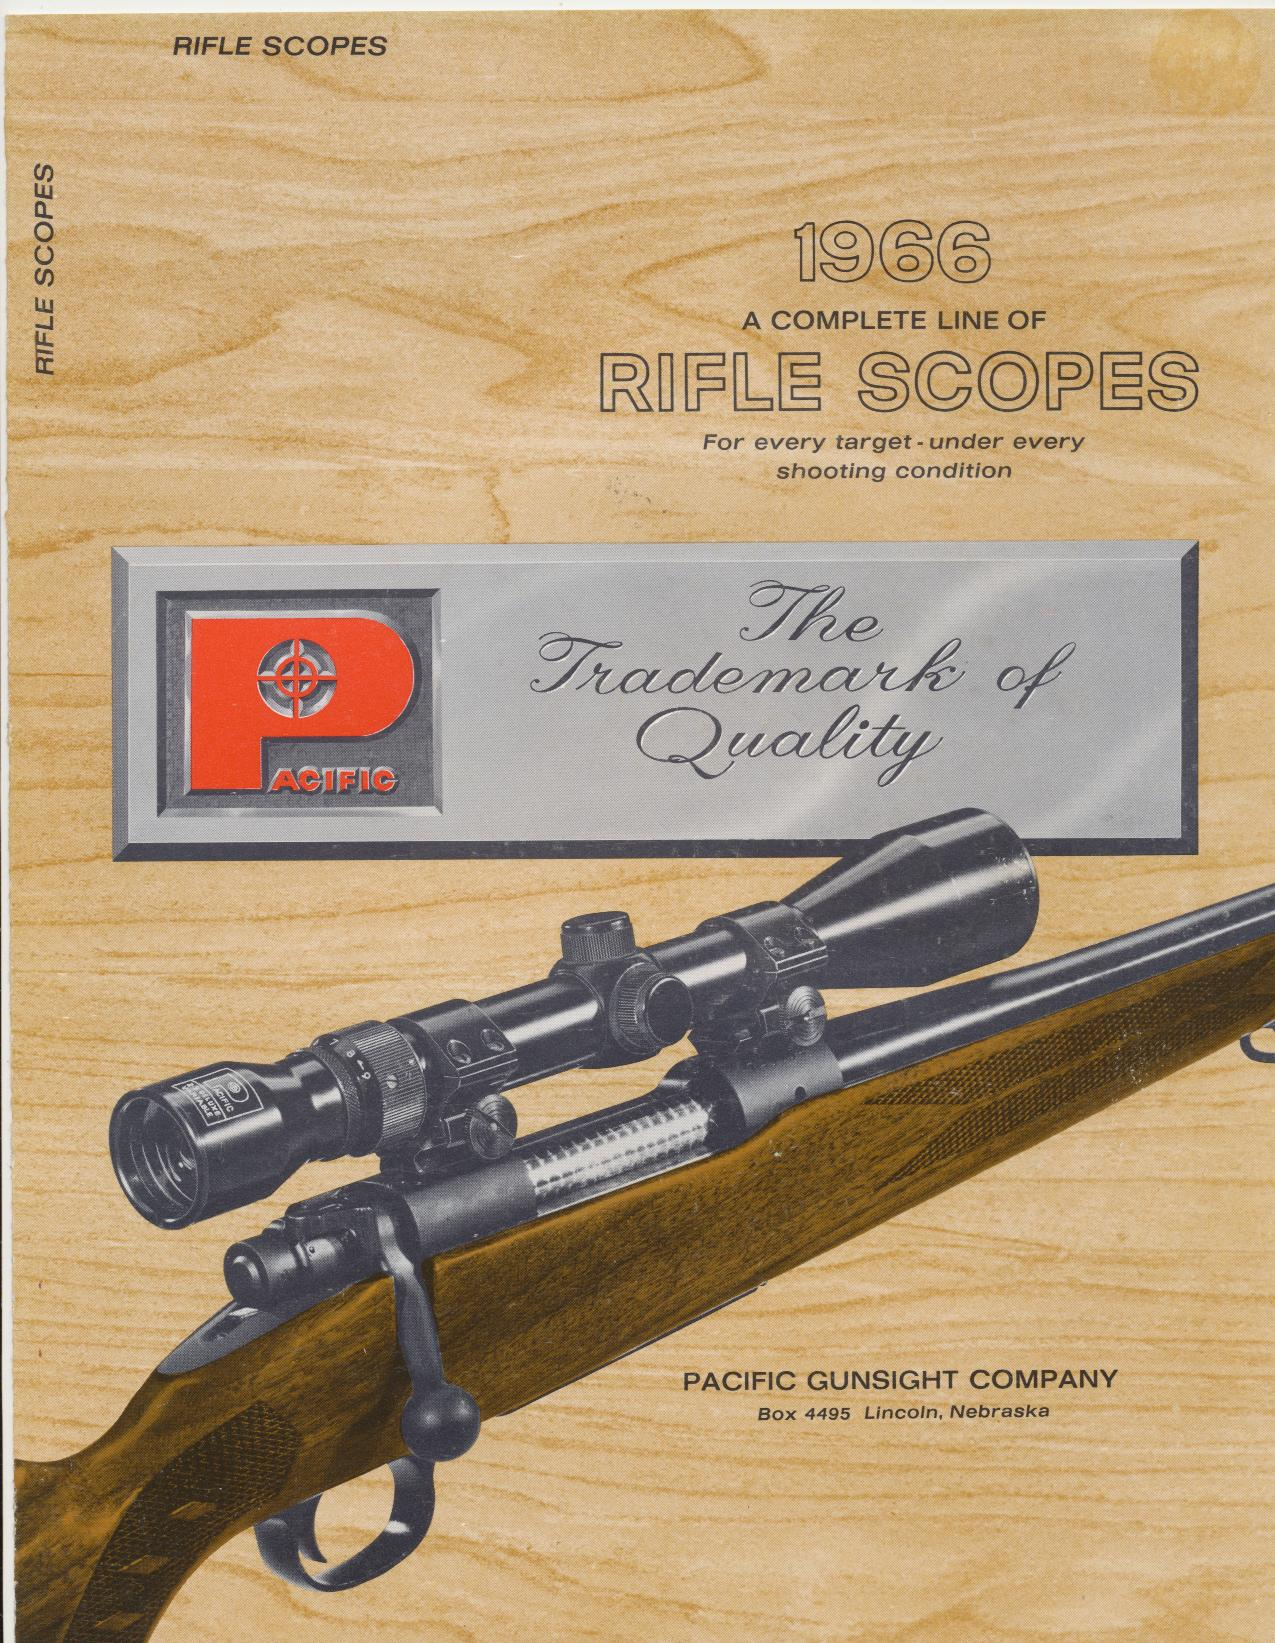 1966 Rifle Scopes Catalog From Pacific Gunsight Company